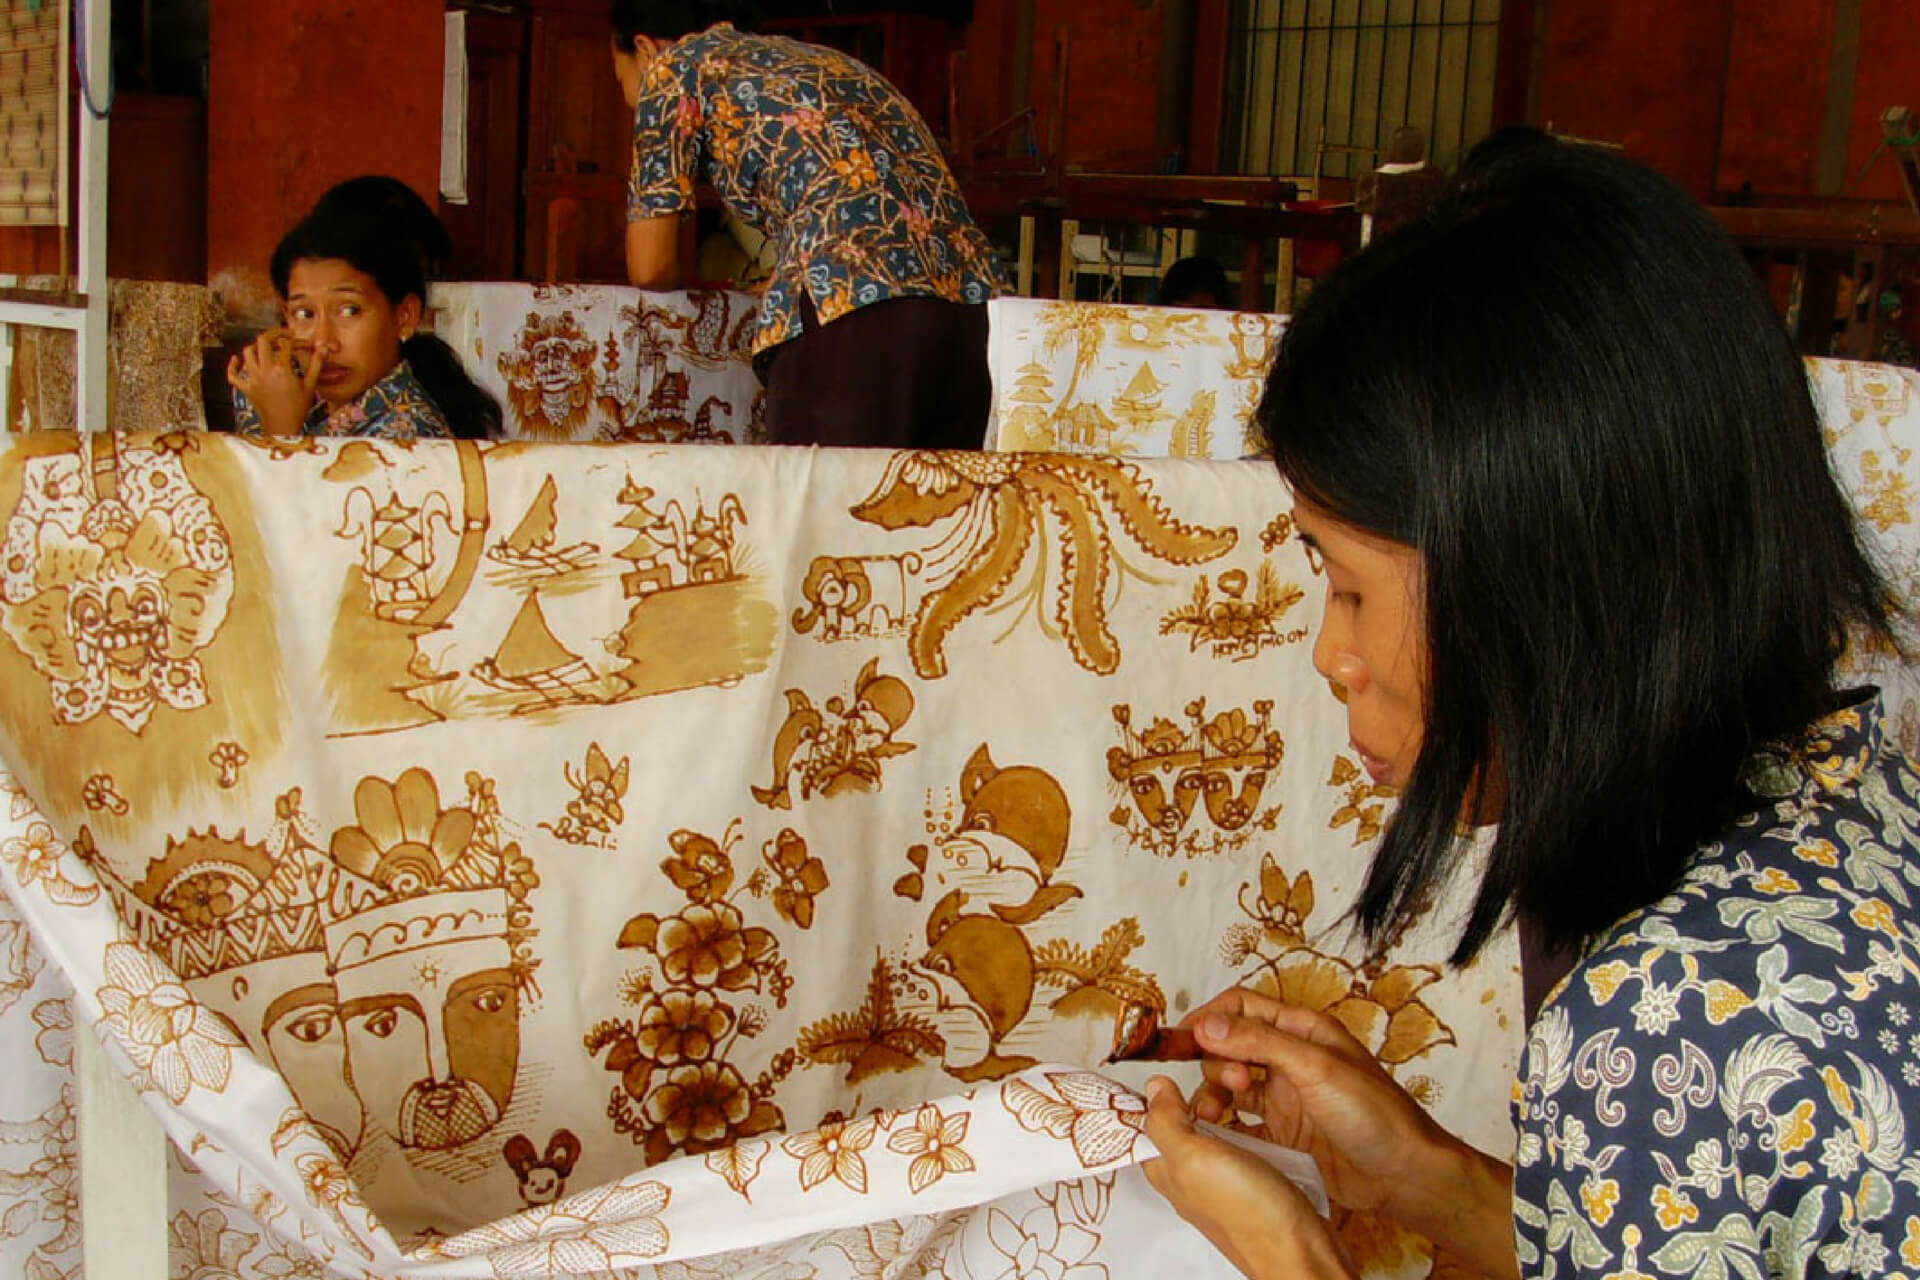 Tohpati Village Batik Crafts